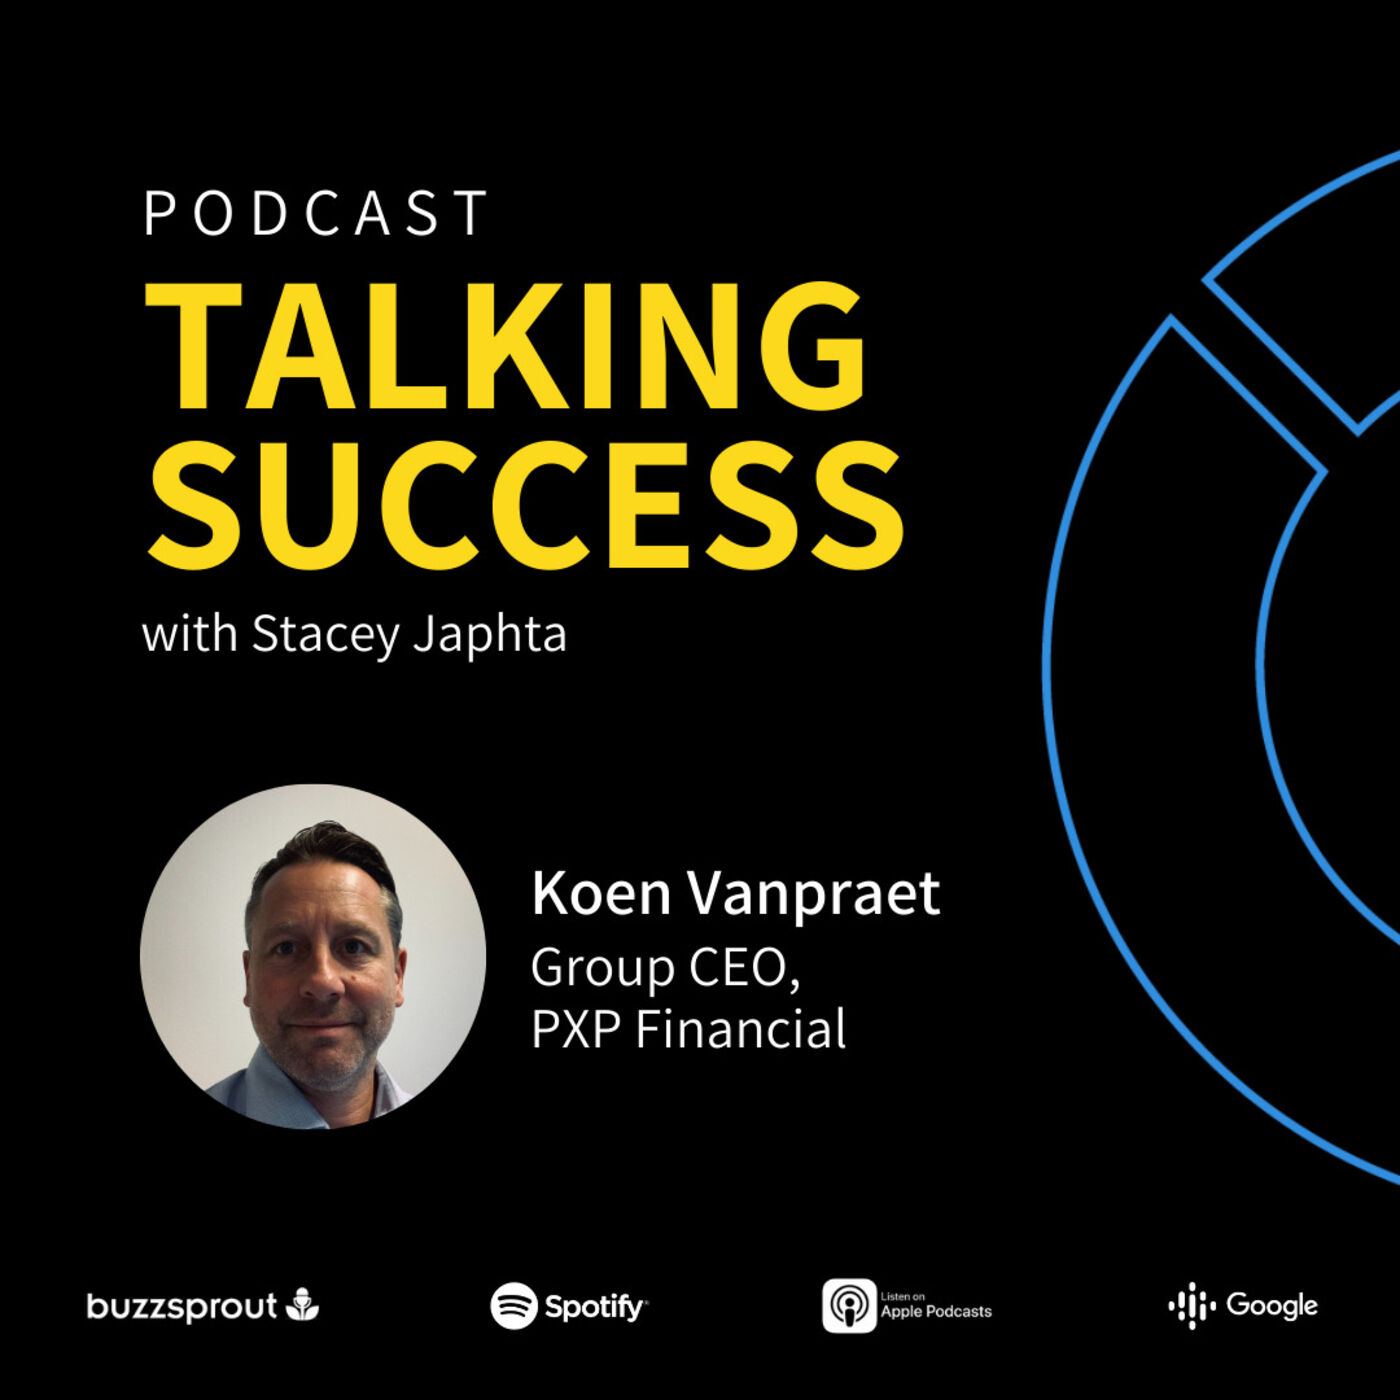 Koen Vanpraet, Group CEO of PXP Financial – All things FinTech, tips on selling technology, & merging businesses